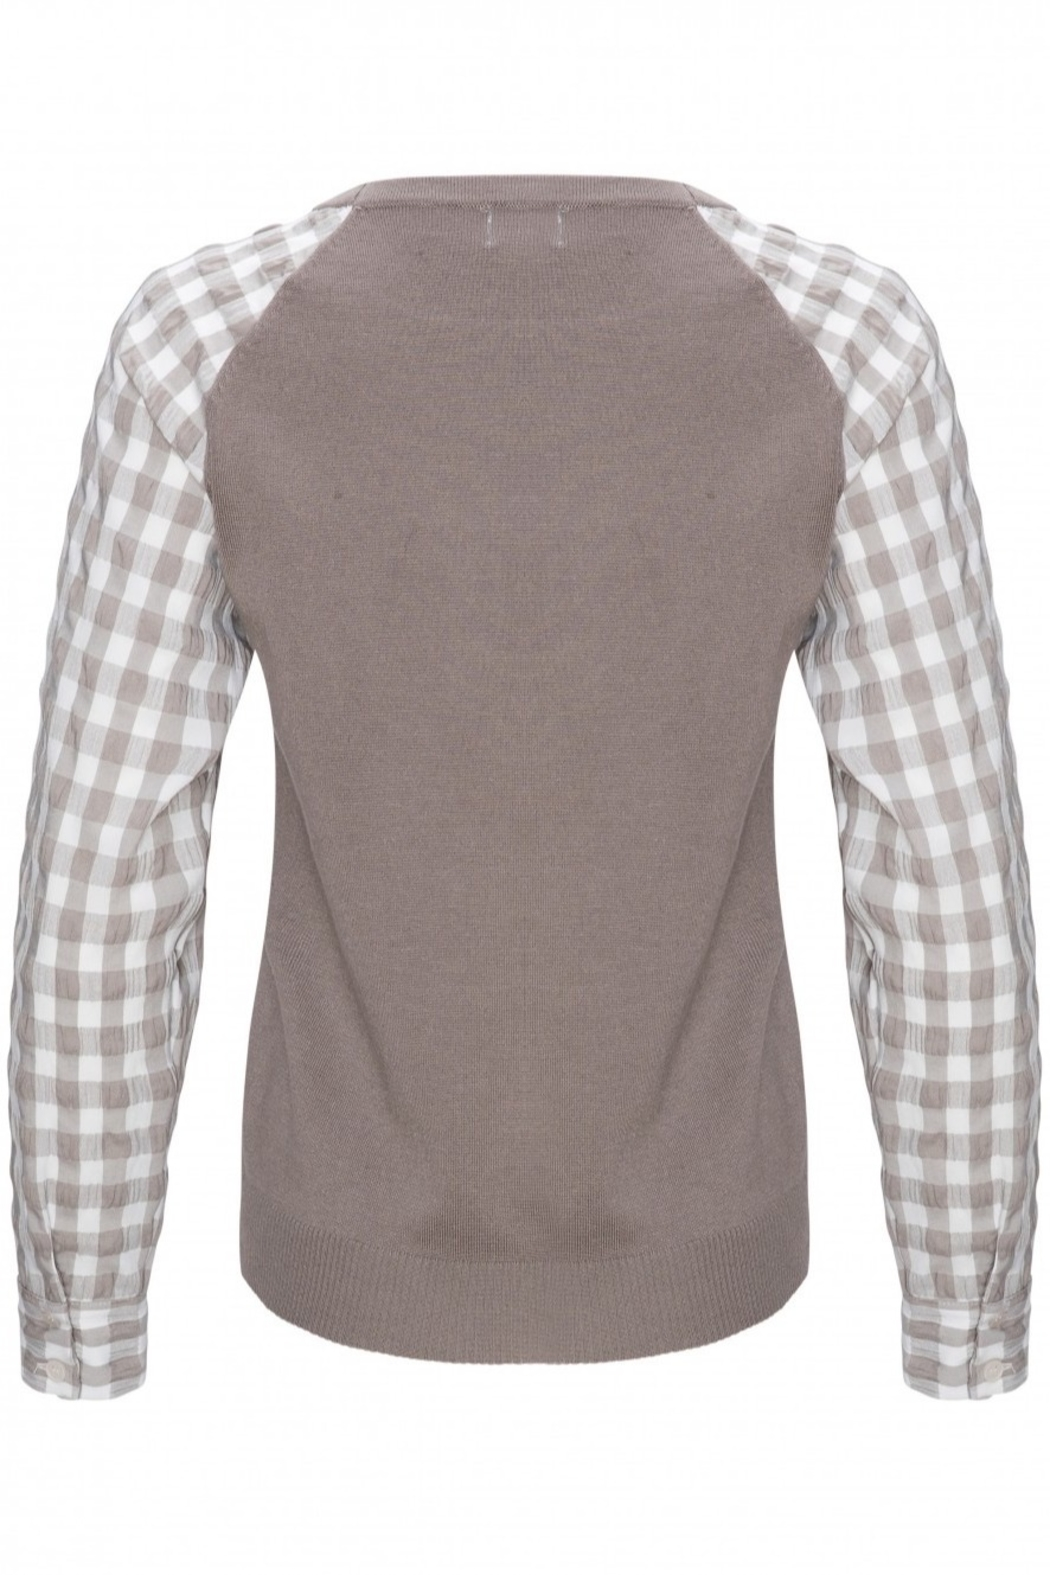 Yal NY Grey sweater with grey/white checkered sleeve - Side Cropped Image